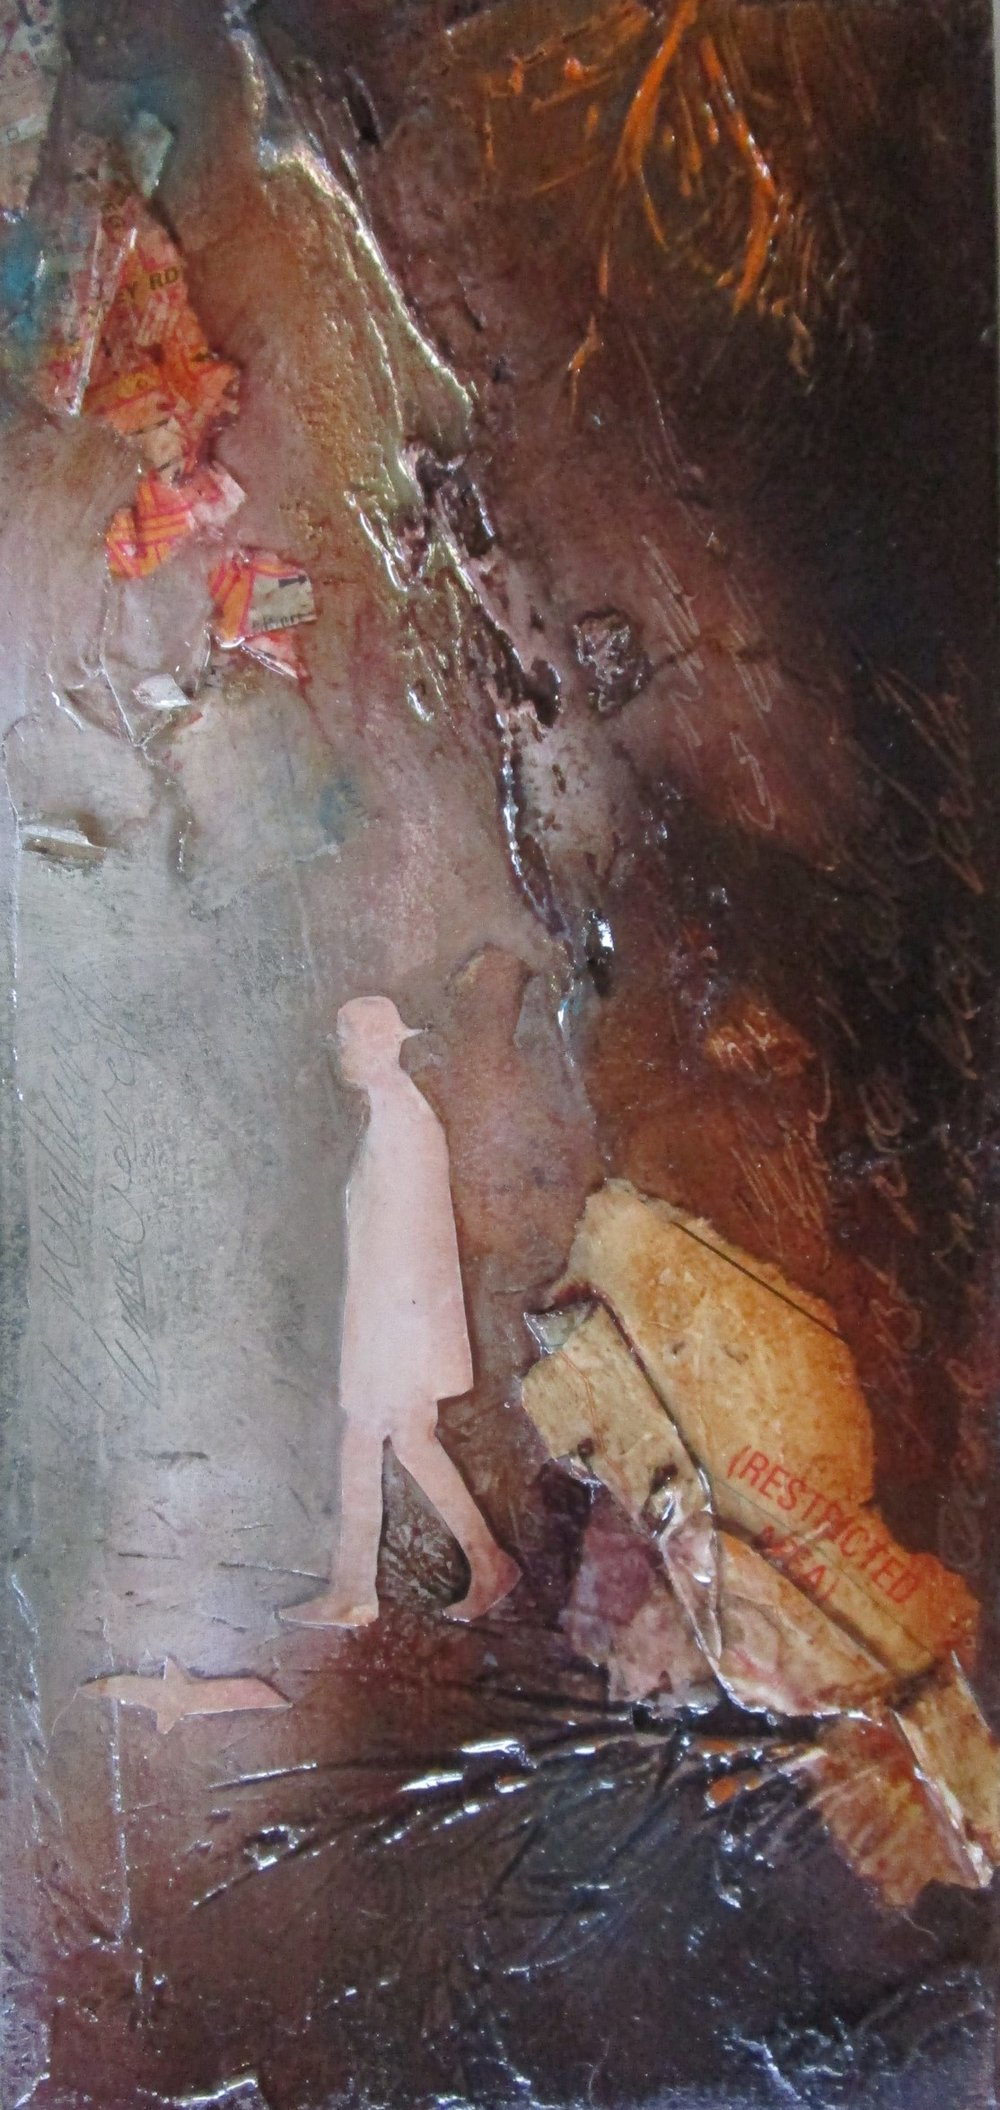 Lara Mellon - Crossing Roads - Mixed Media on Board - 21x10cm.JPG